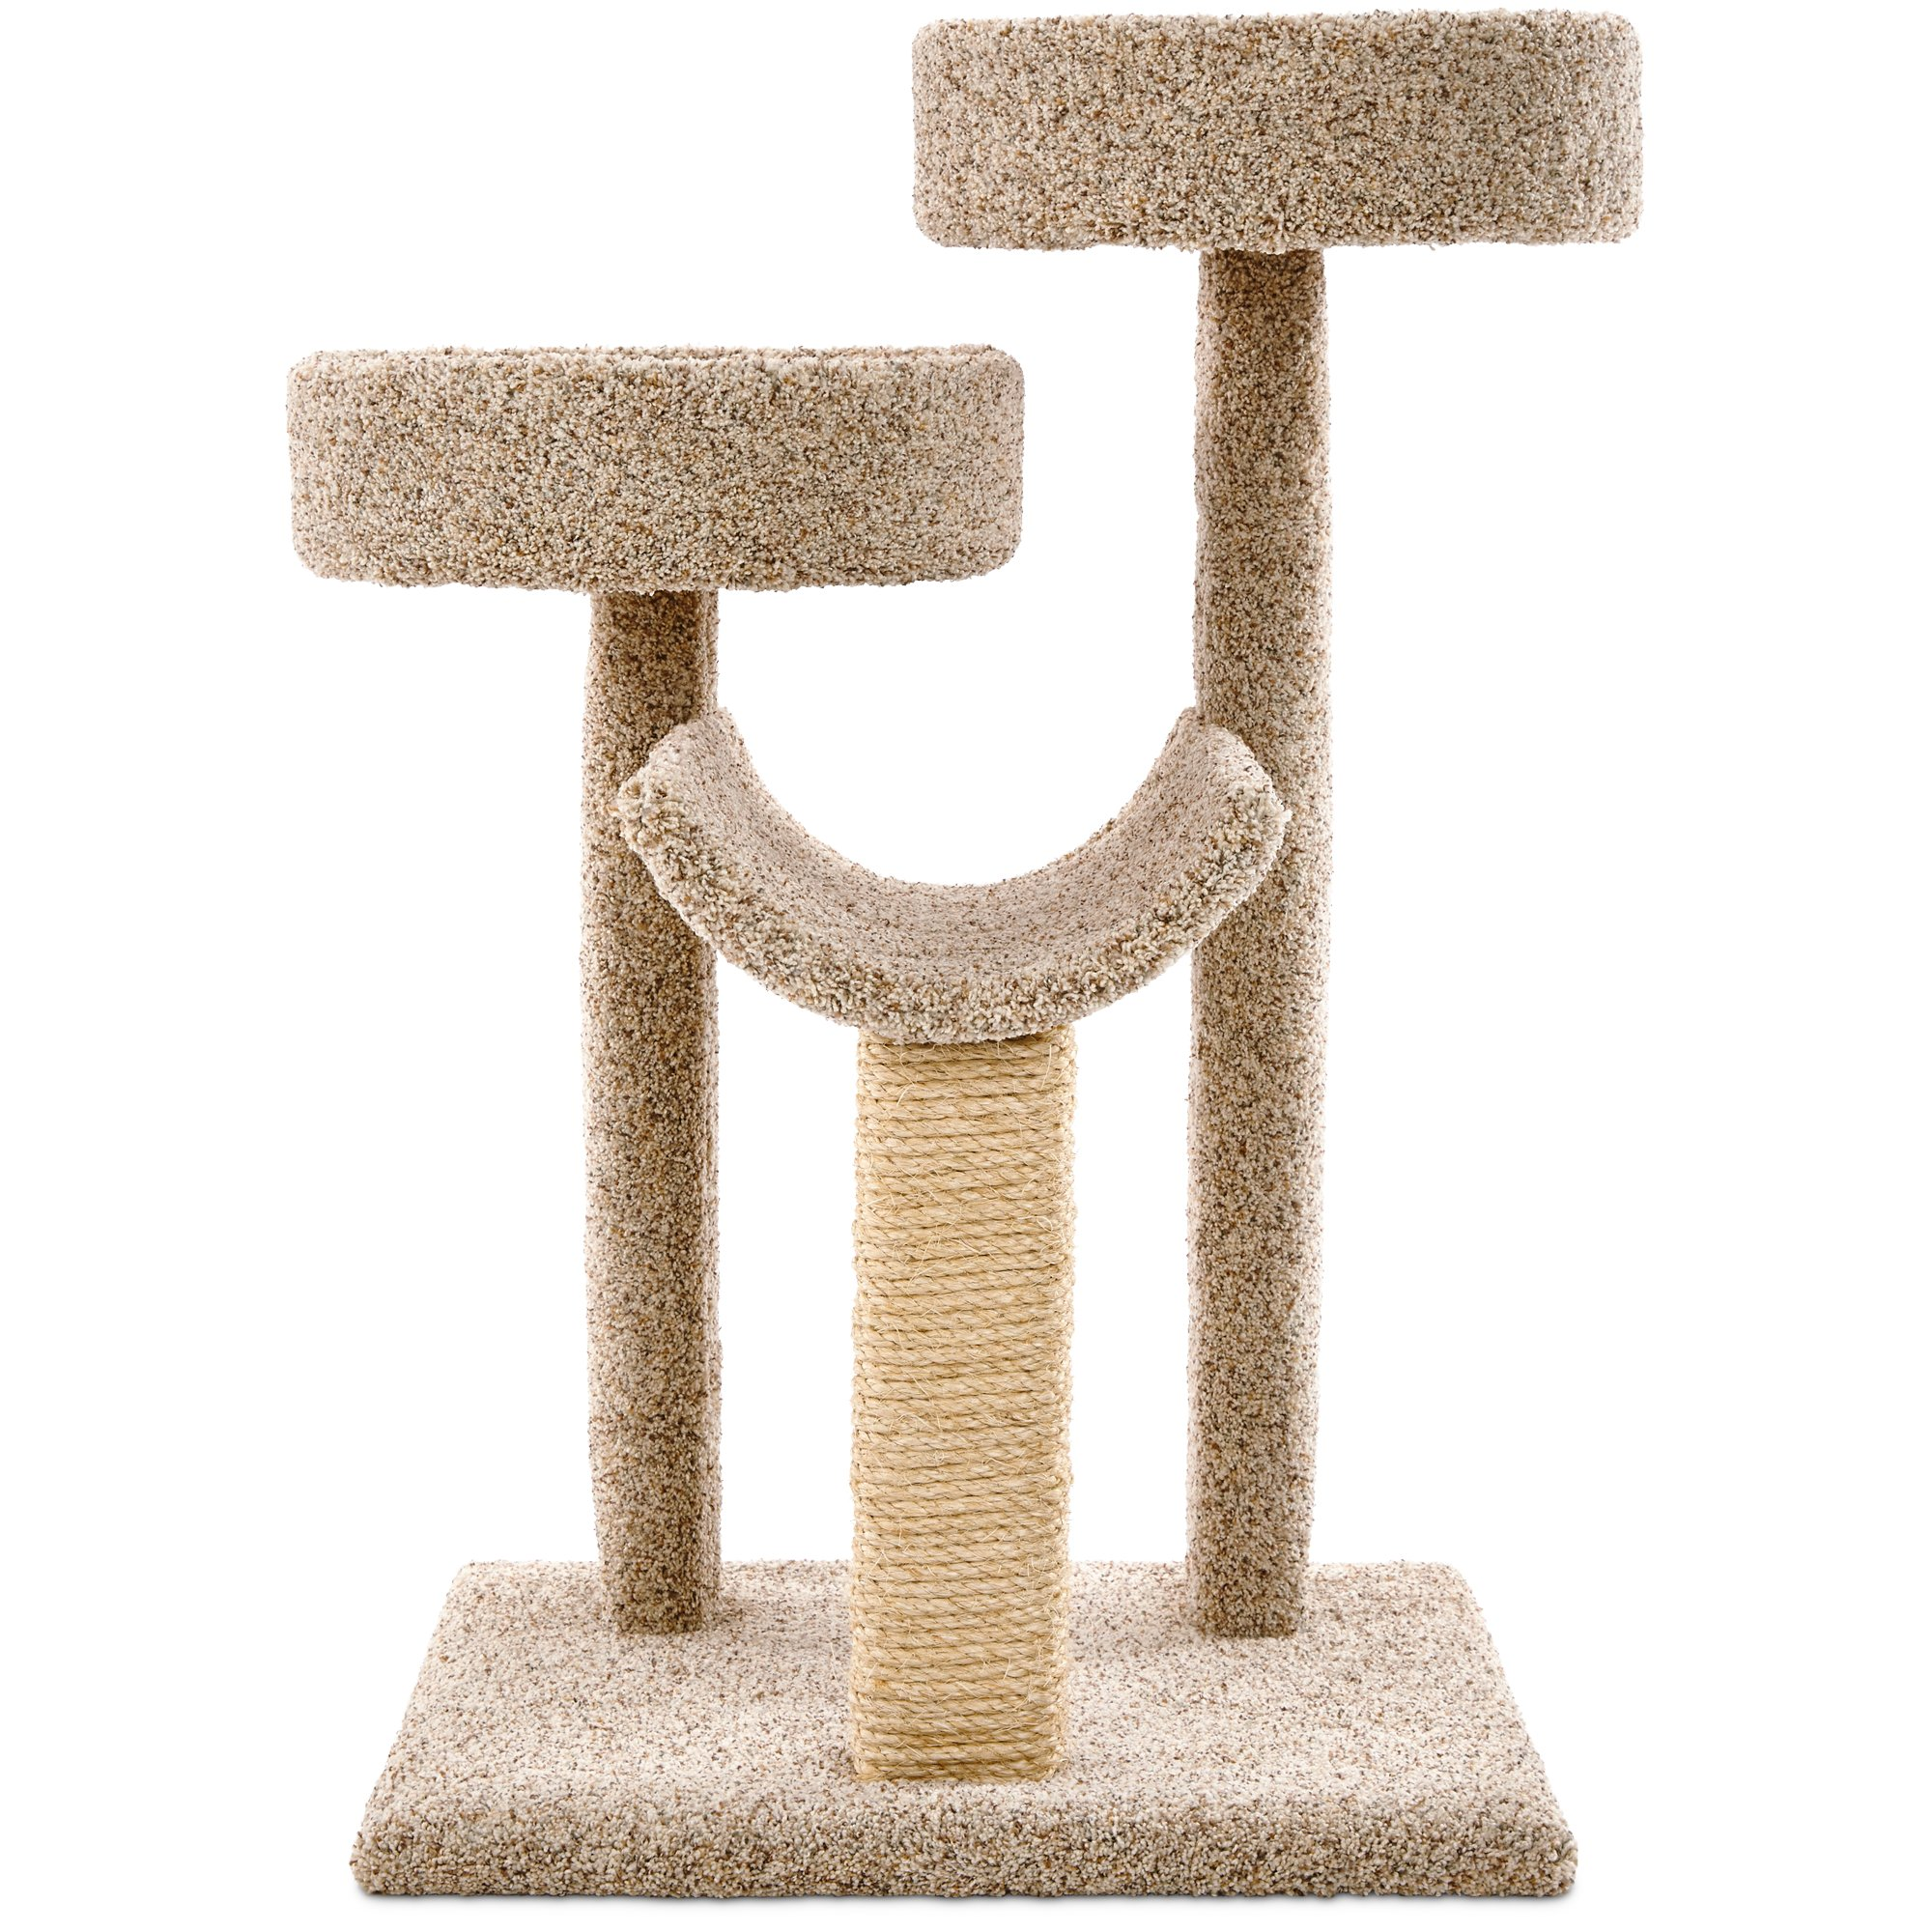 You & Me Double Cat Nest With Lounger   Petco at Petco in Braselton, GA   Tuggl